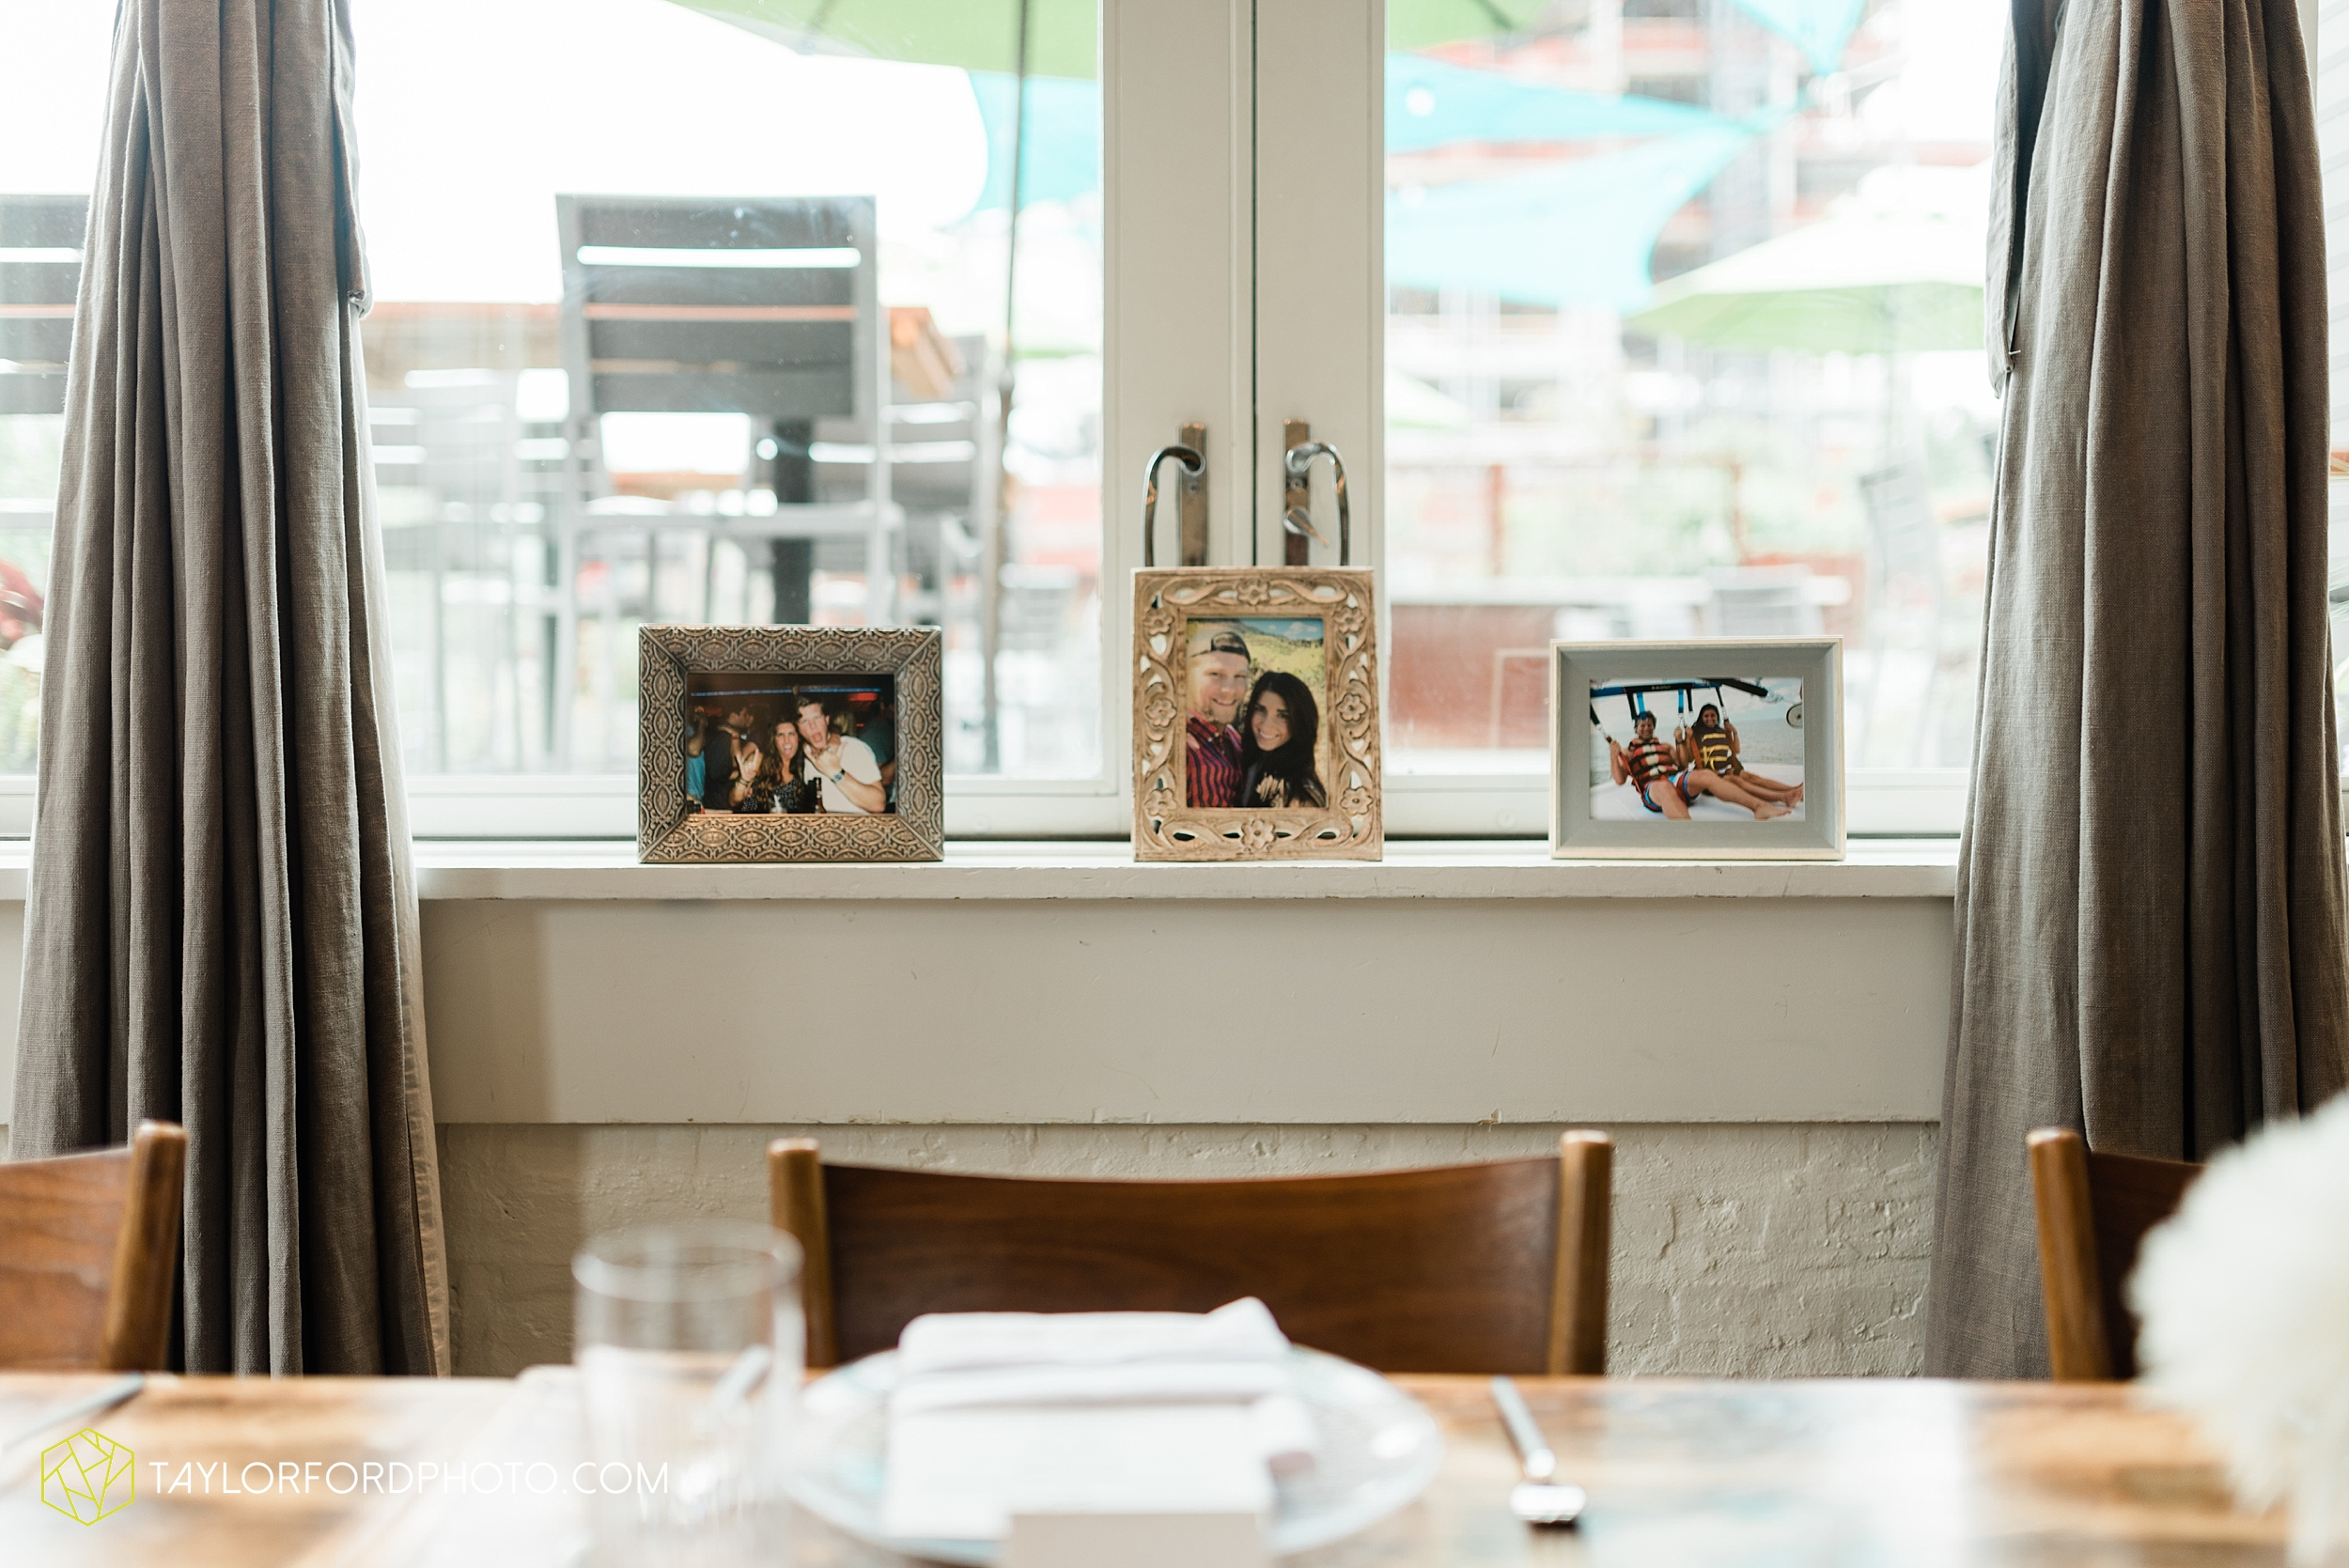 chicago-illinois-bridal-shower-little-goat-diner-west-loop-wedding-photographer-taylor-ford-photographer_8782.jpg